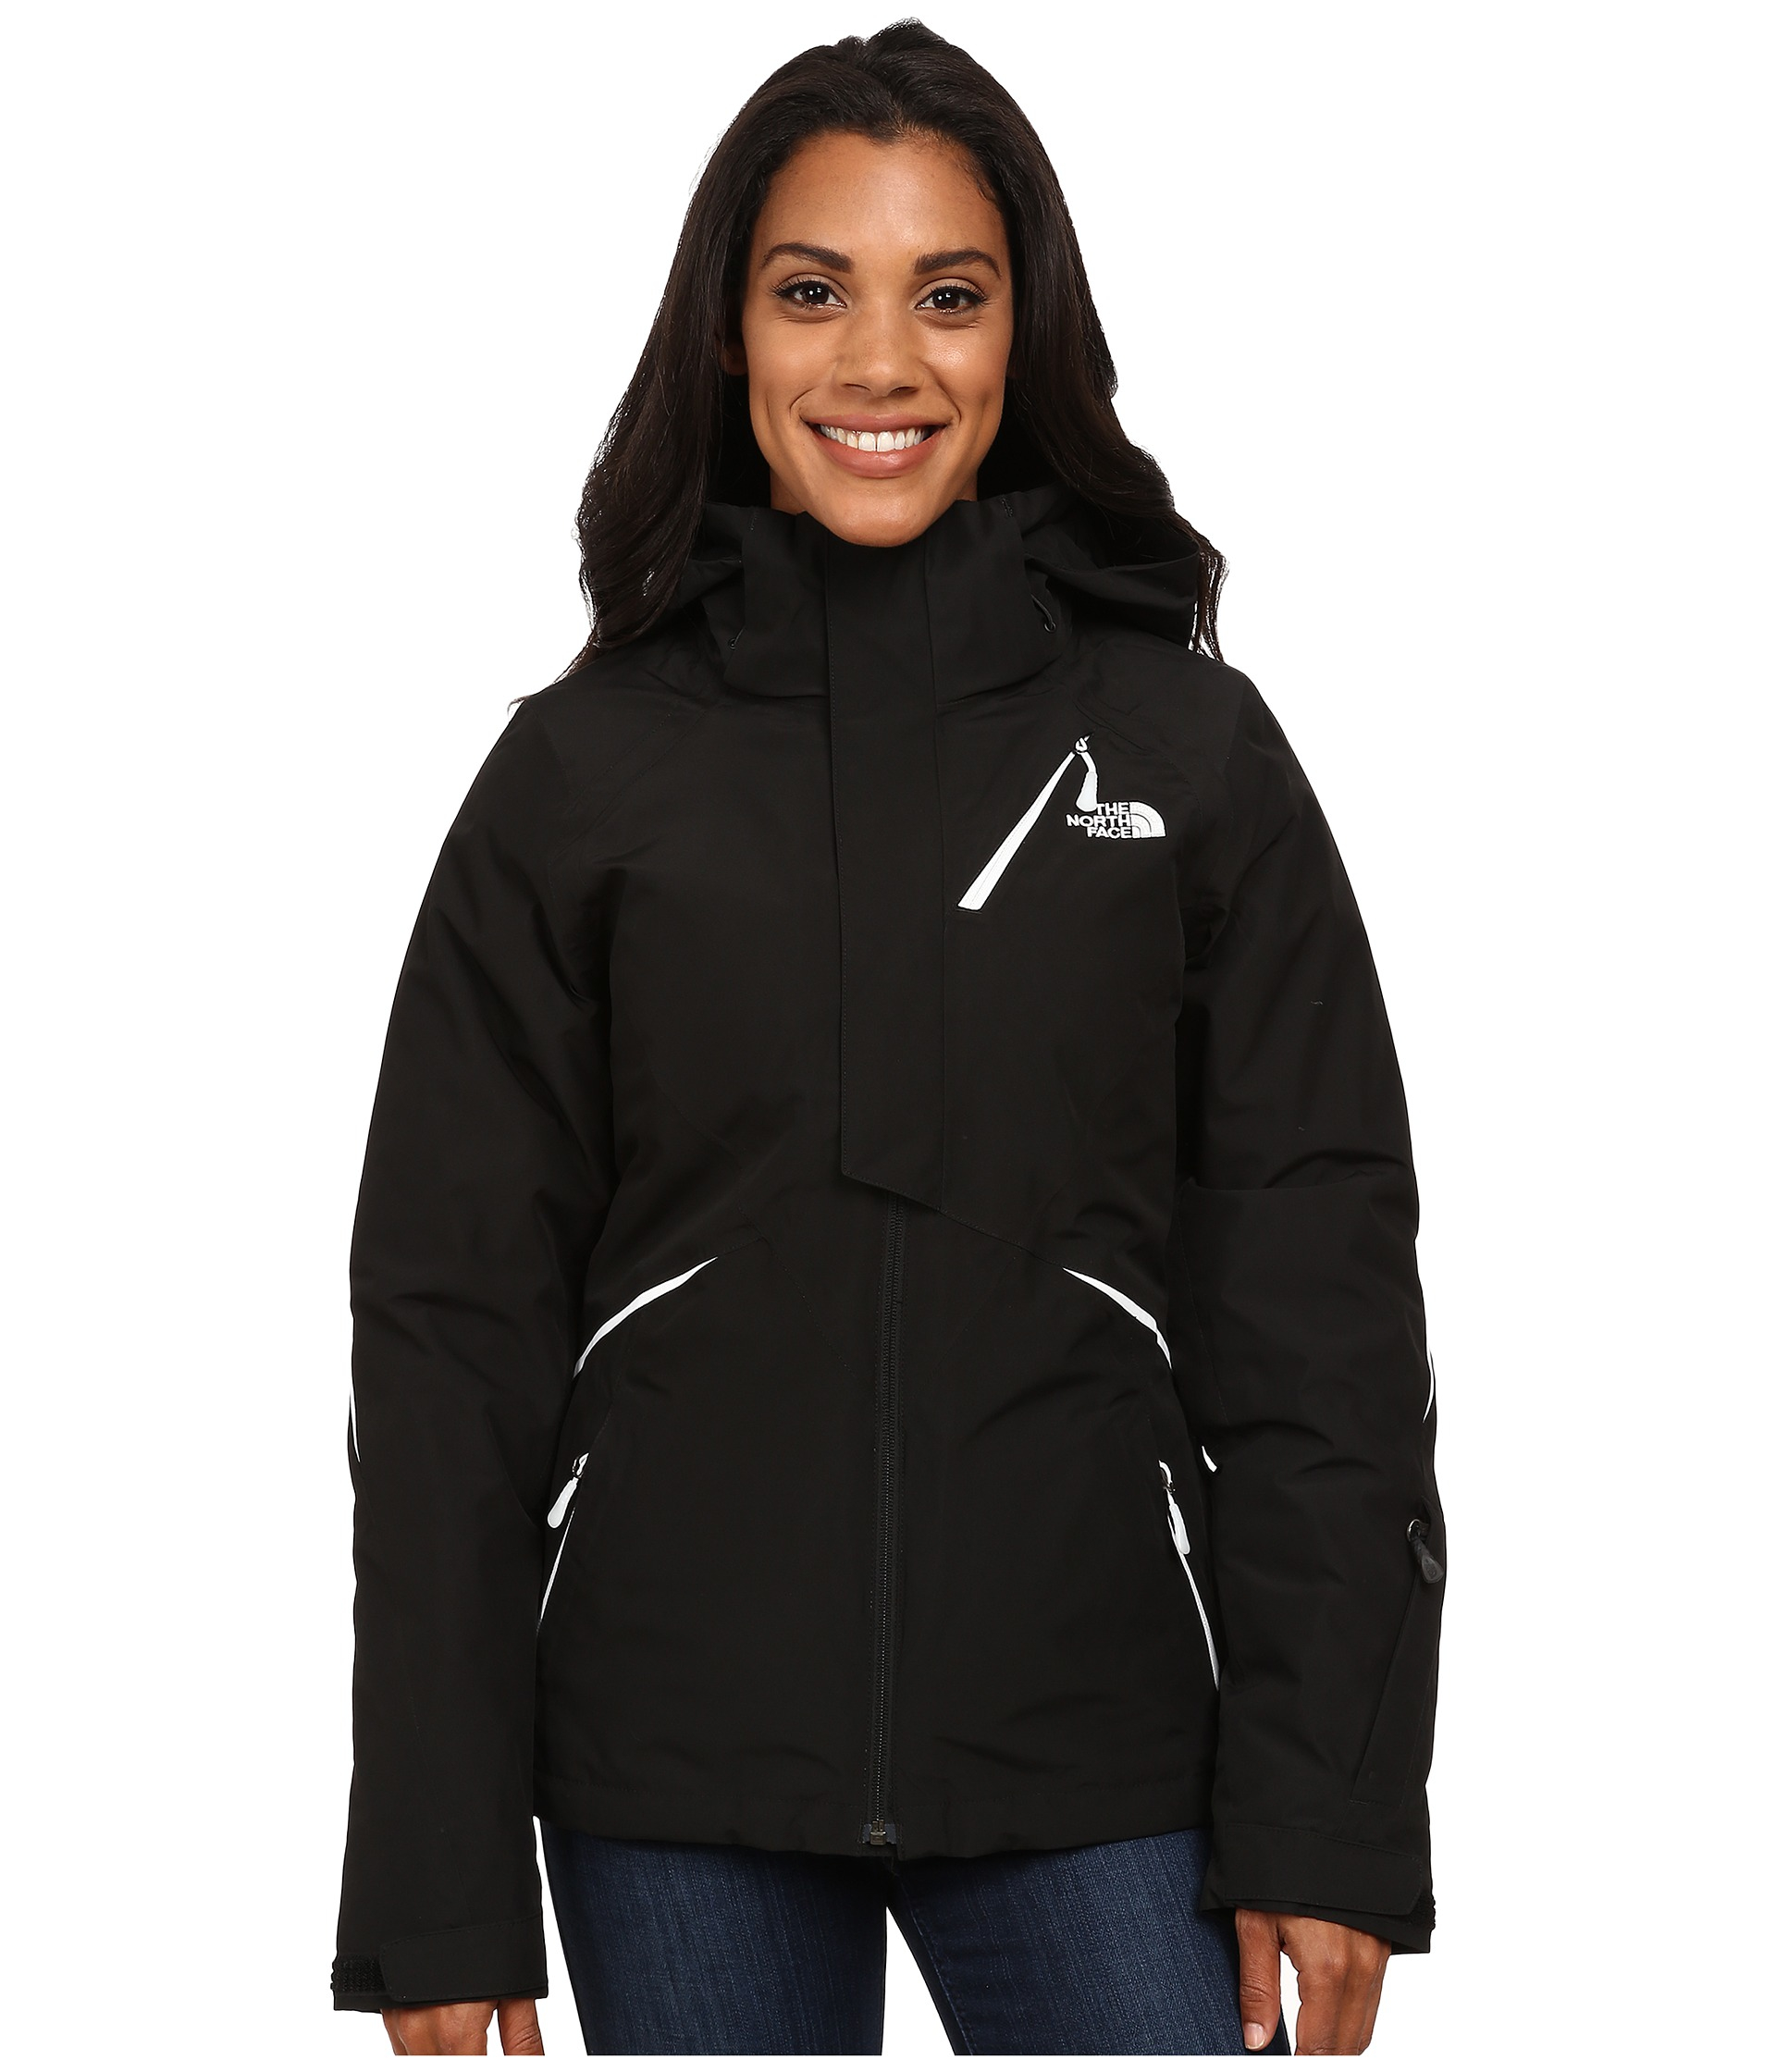 4f4a31e45834 ... new zealand lyst the north face kira triclimate jacket in black 494c6  19c6e ...